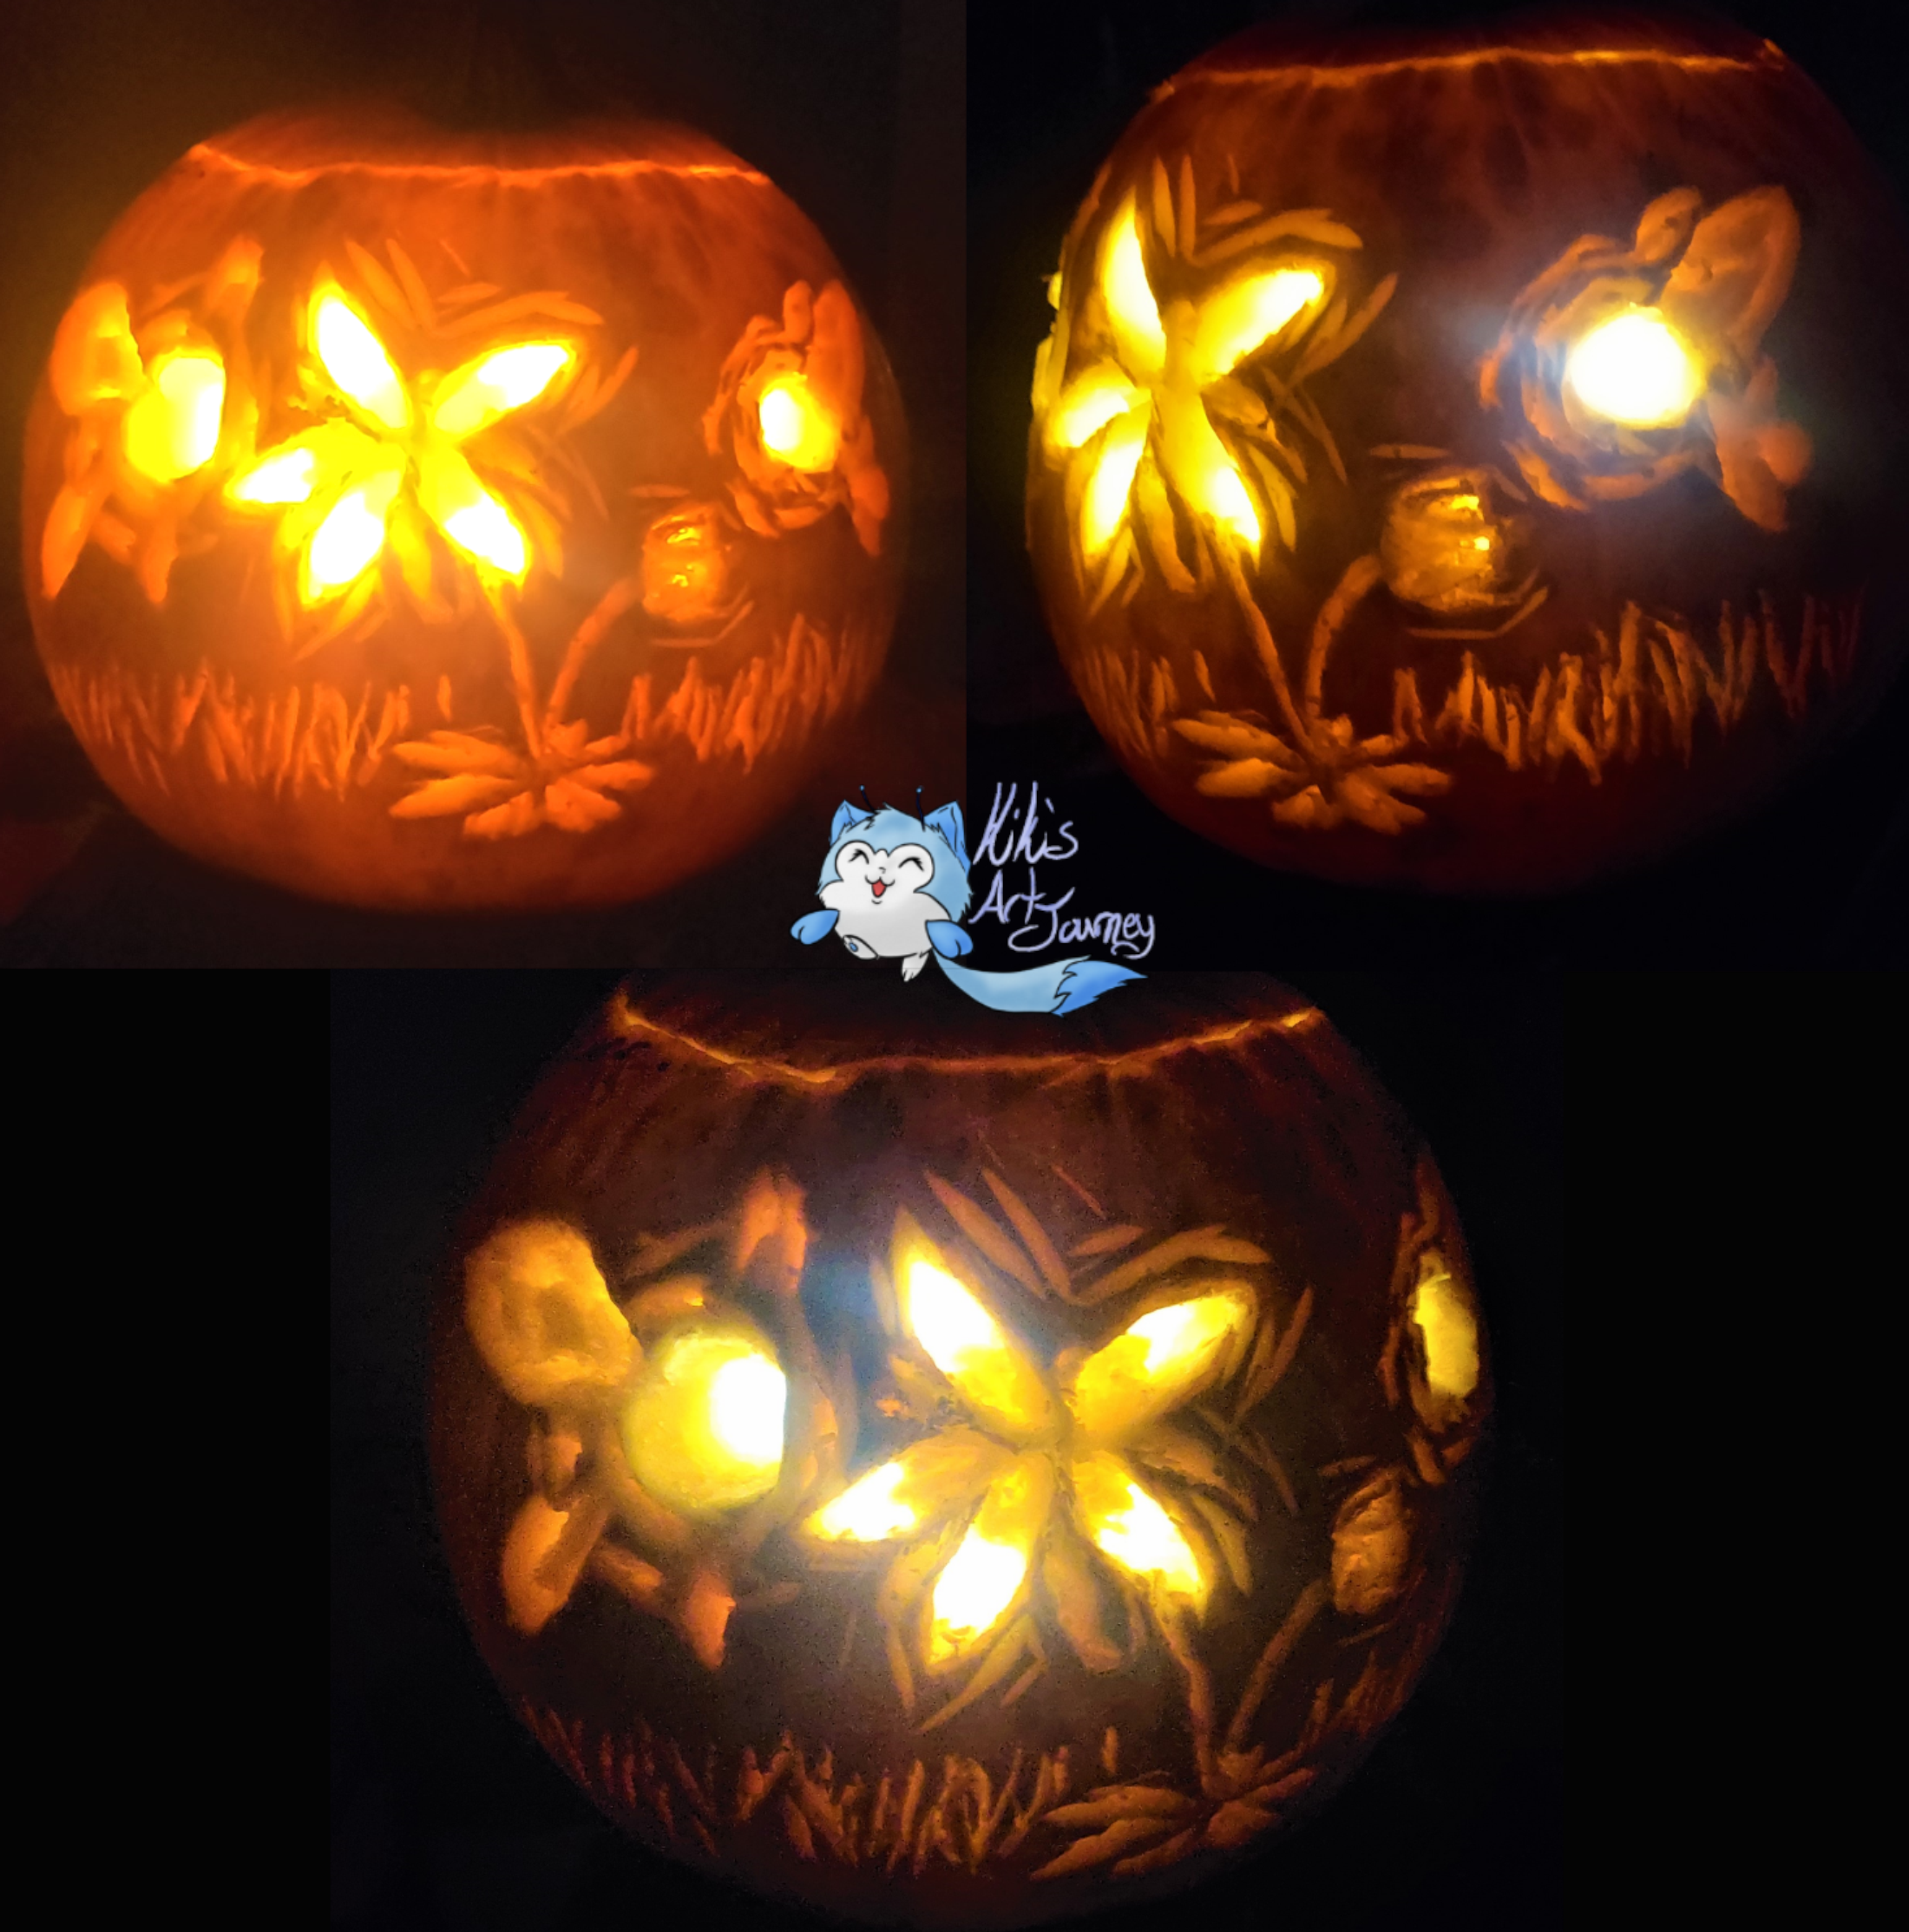 Linktober Day 31 Free for all - Pumkin Carving